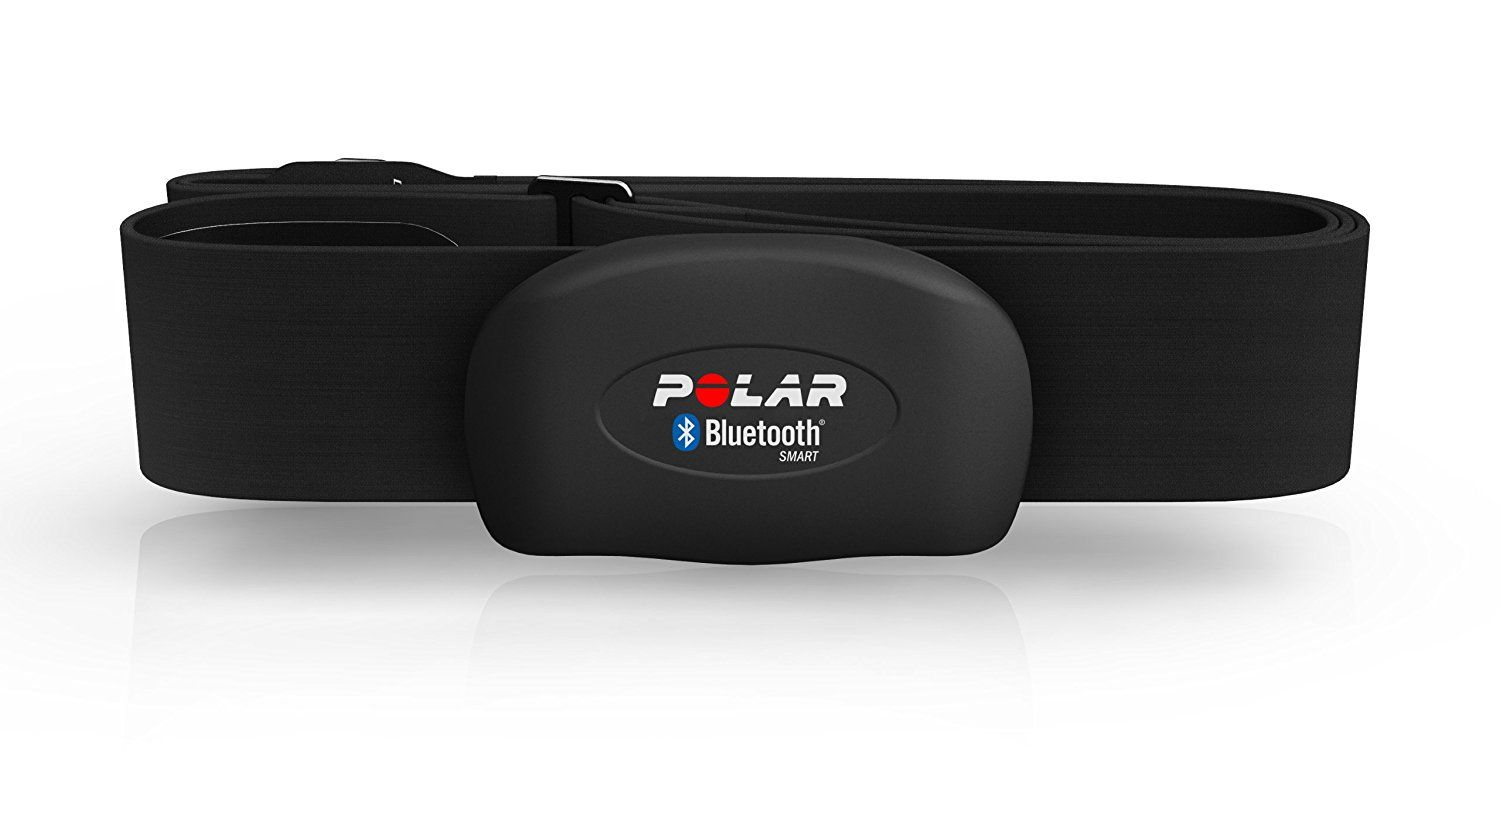 oferta polar m400 hr ganga amazon